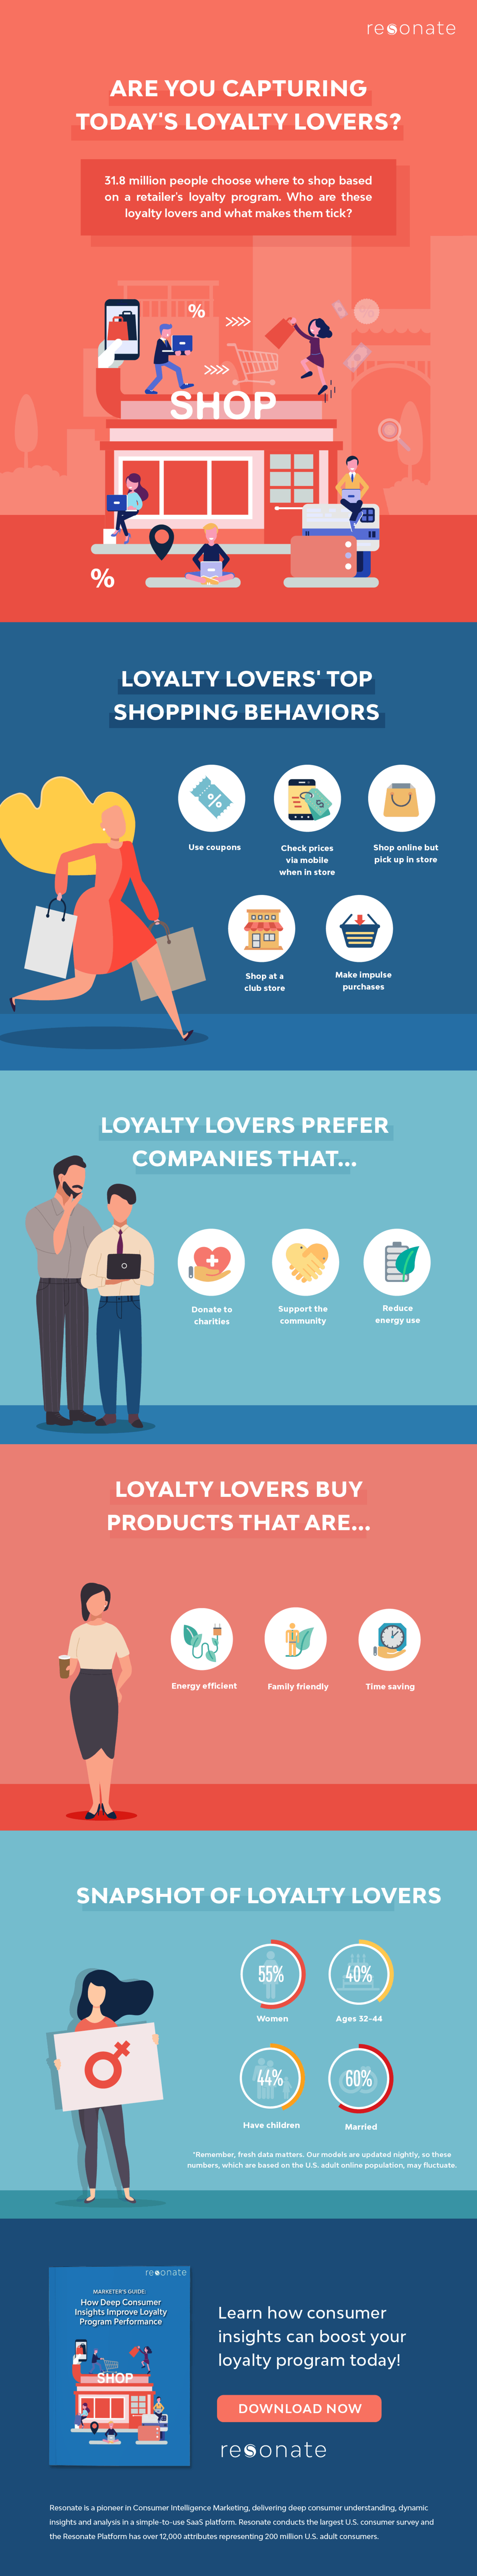 Check out this great infographic to learn 15 new facts about today's loyalty program lovers.